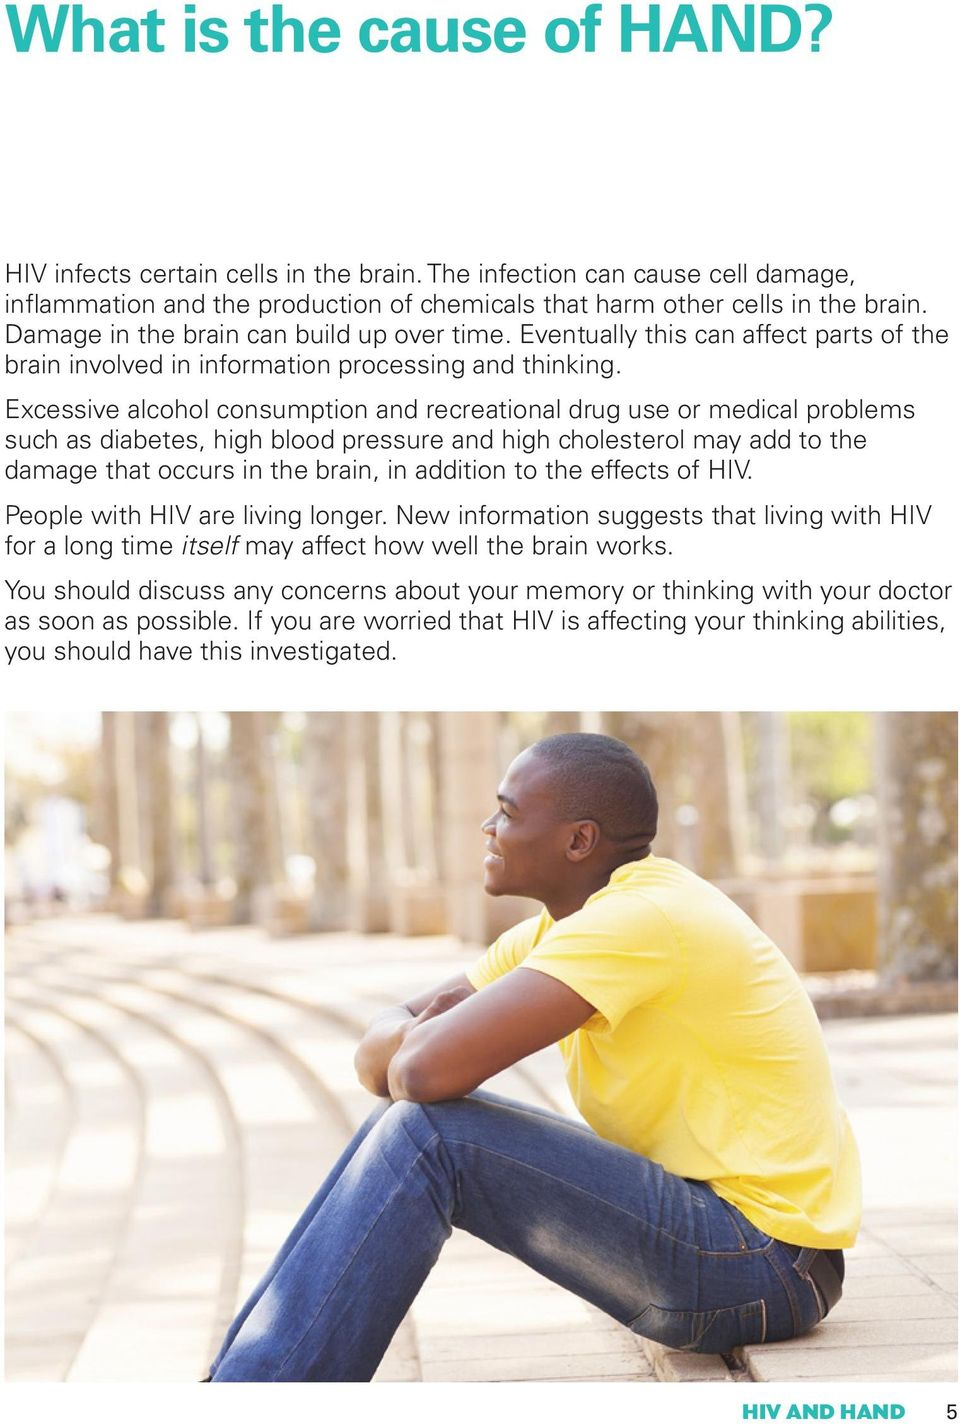 Excessive alcohol consumption and recreational drug use or medical problems such as diabetes, high blood pressure and high cholesterol may add to the damage that occurs in the brain, in addition to